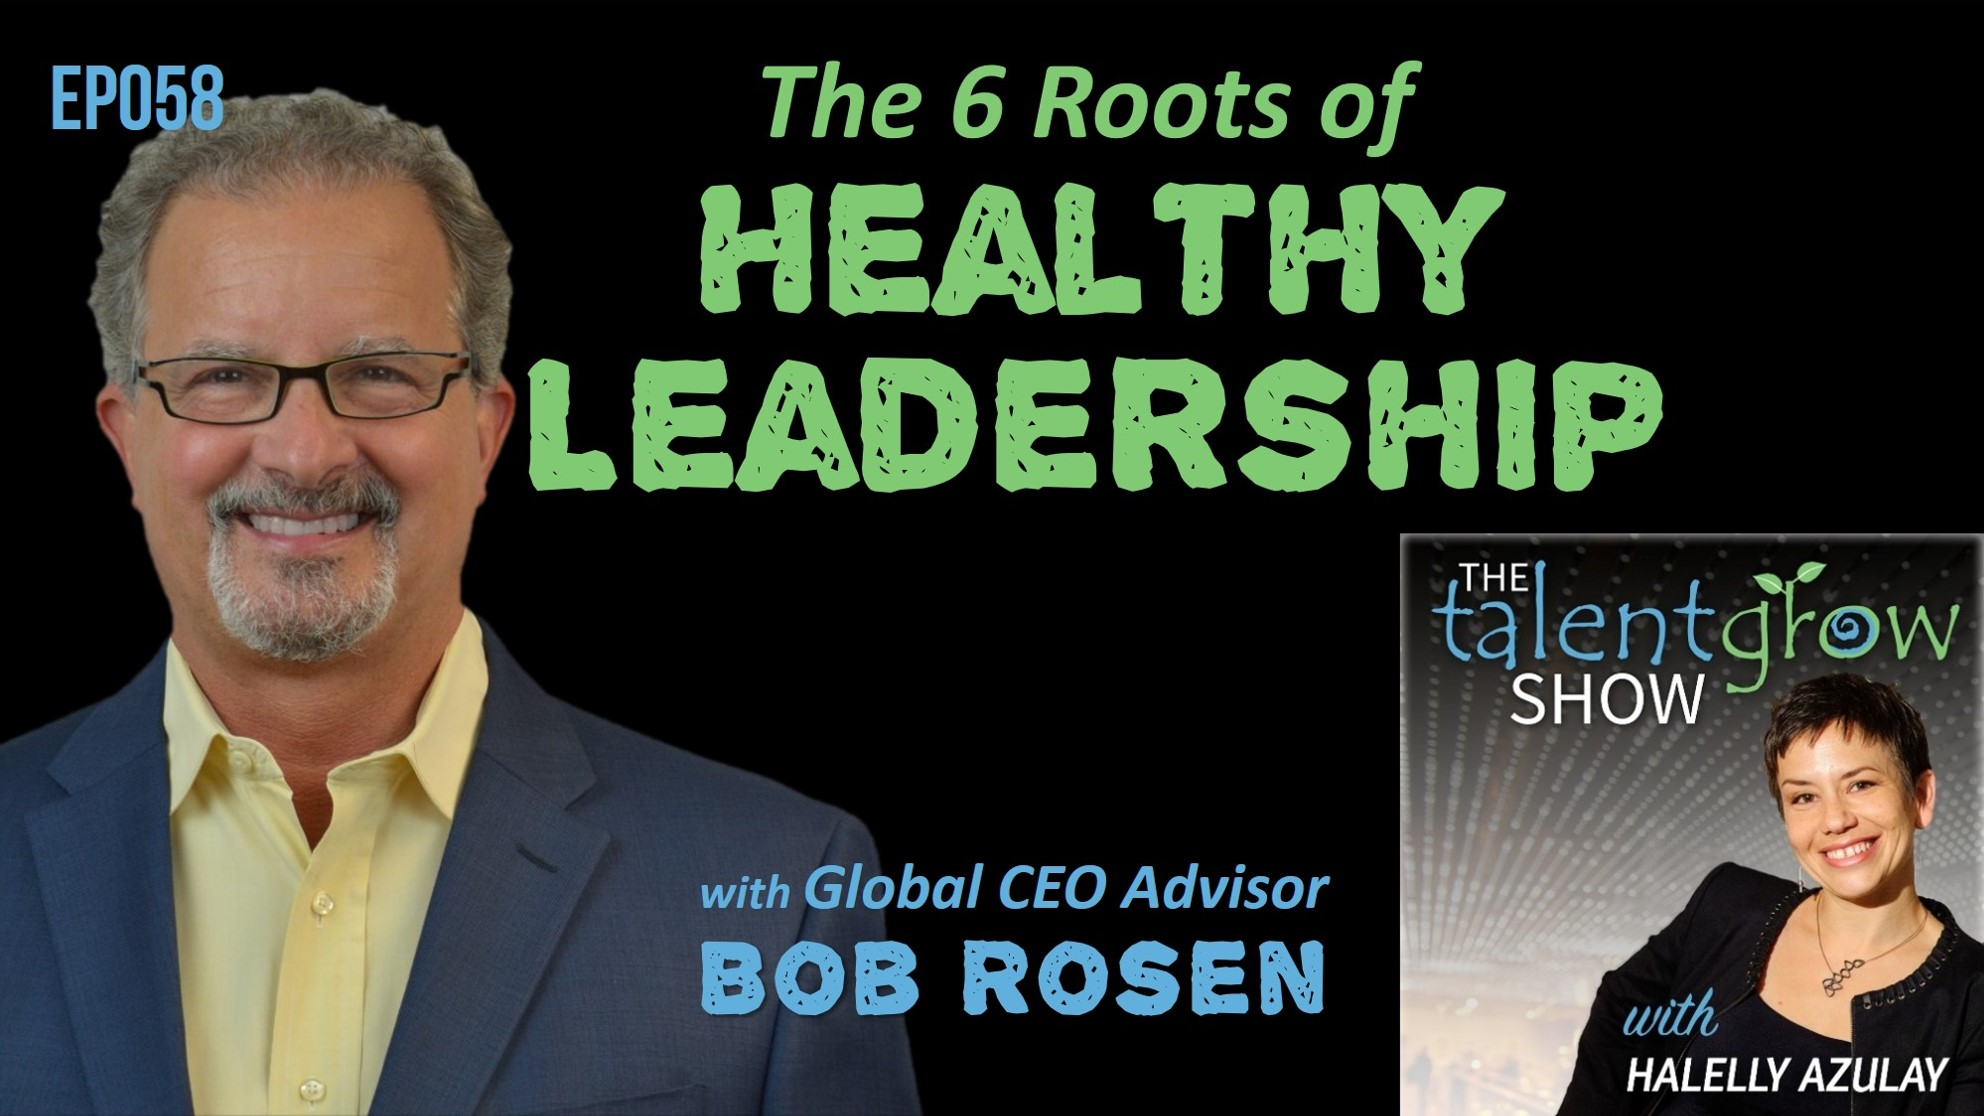 ep058 the six roots of healthy leadership with global CEO advisor Bob Rosen on the TalentGrow Show podcast with Halelly Azulay